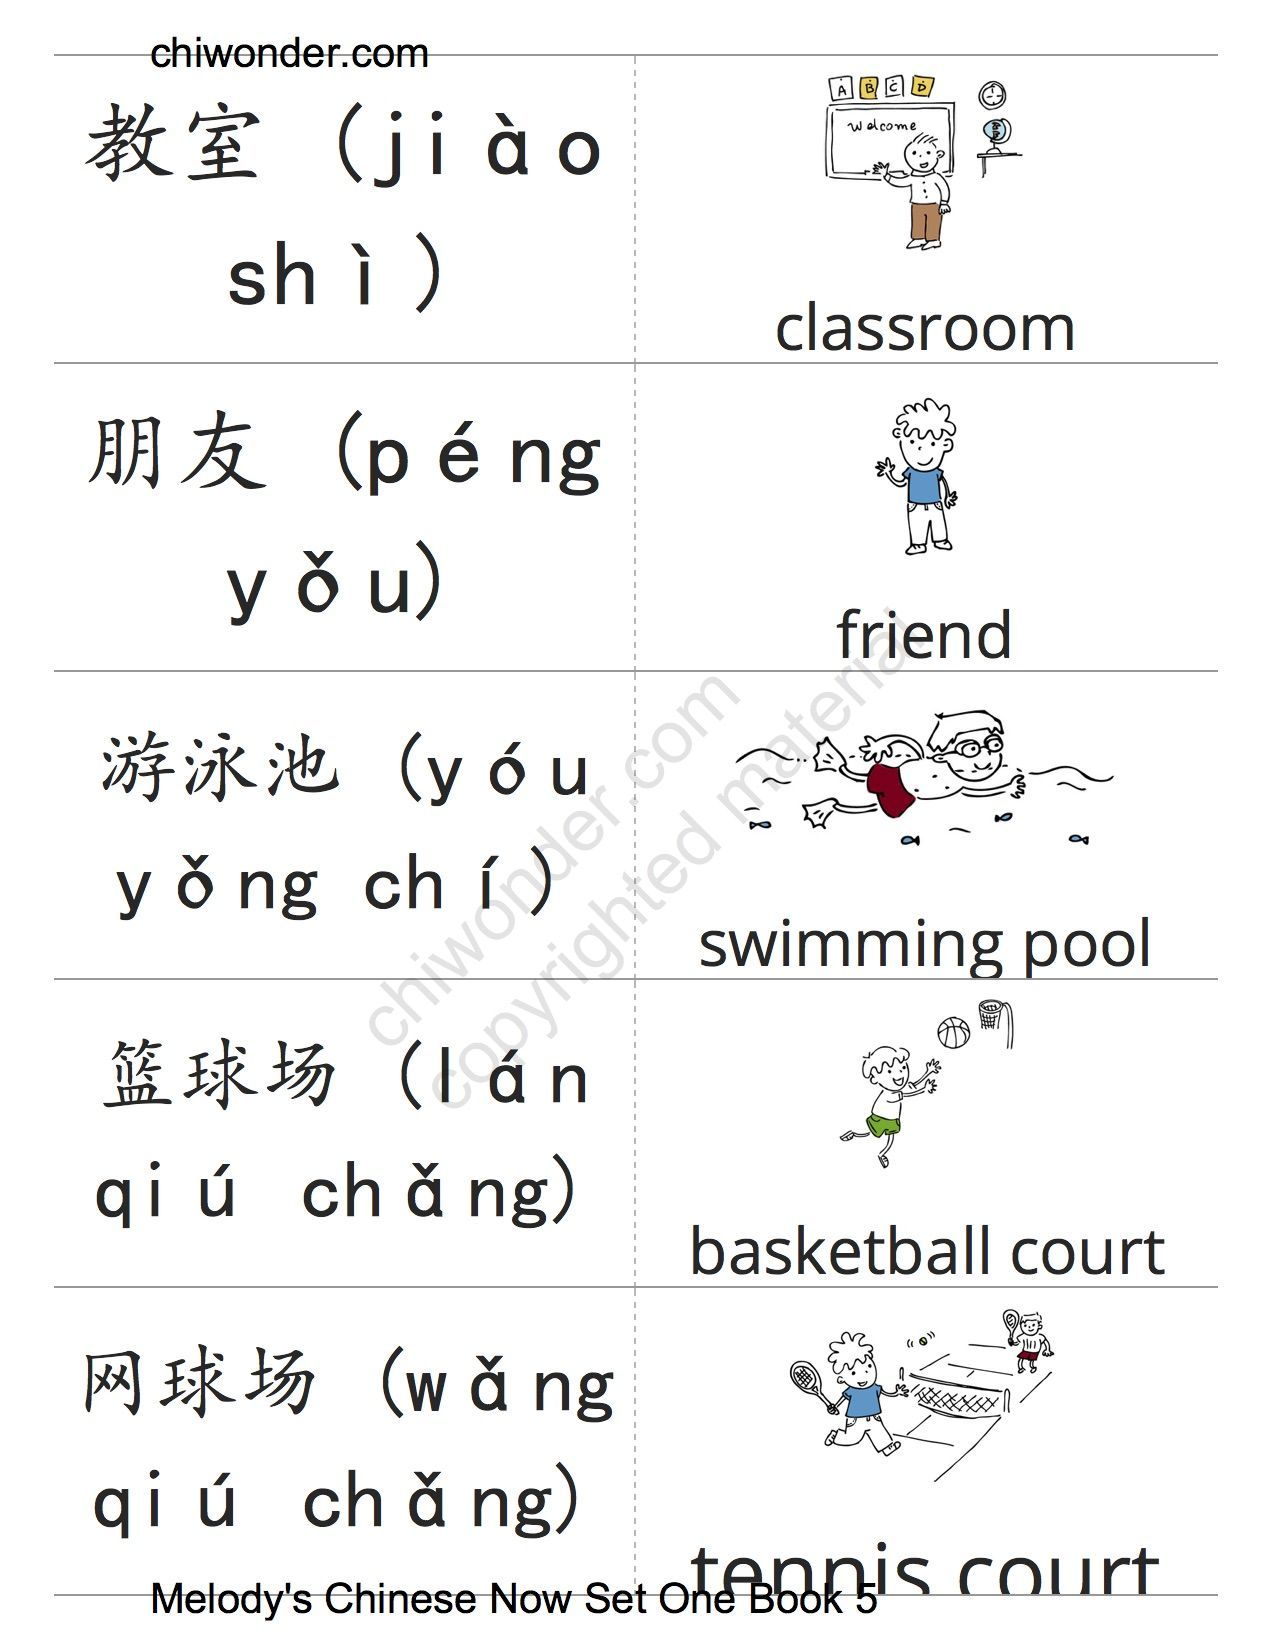 Chiwonder Com Speakchineseovernight Com How To Speak Chinese Words Word Search Puzzle [ 1650 x 1275 Pixel ]